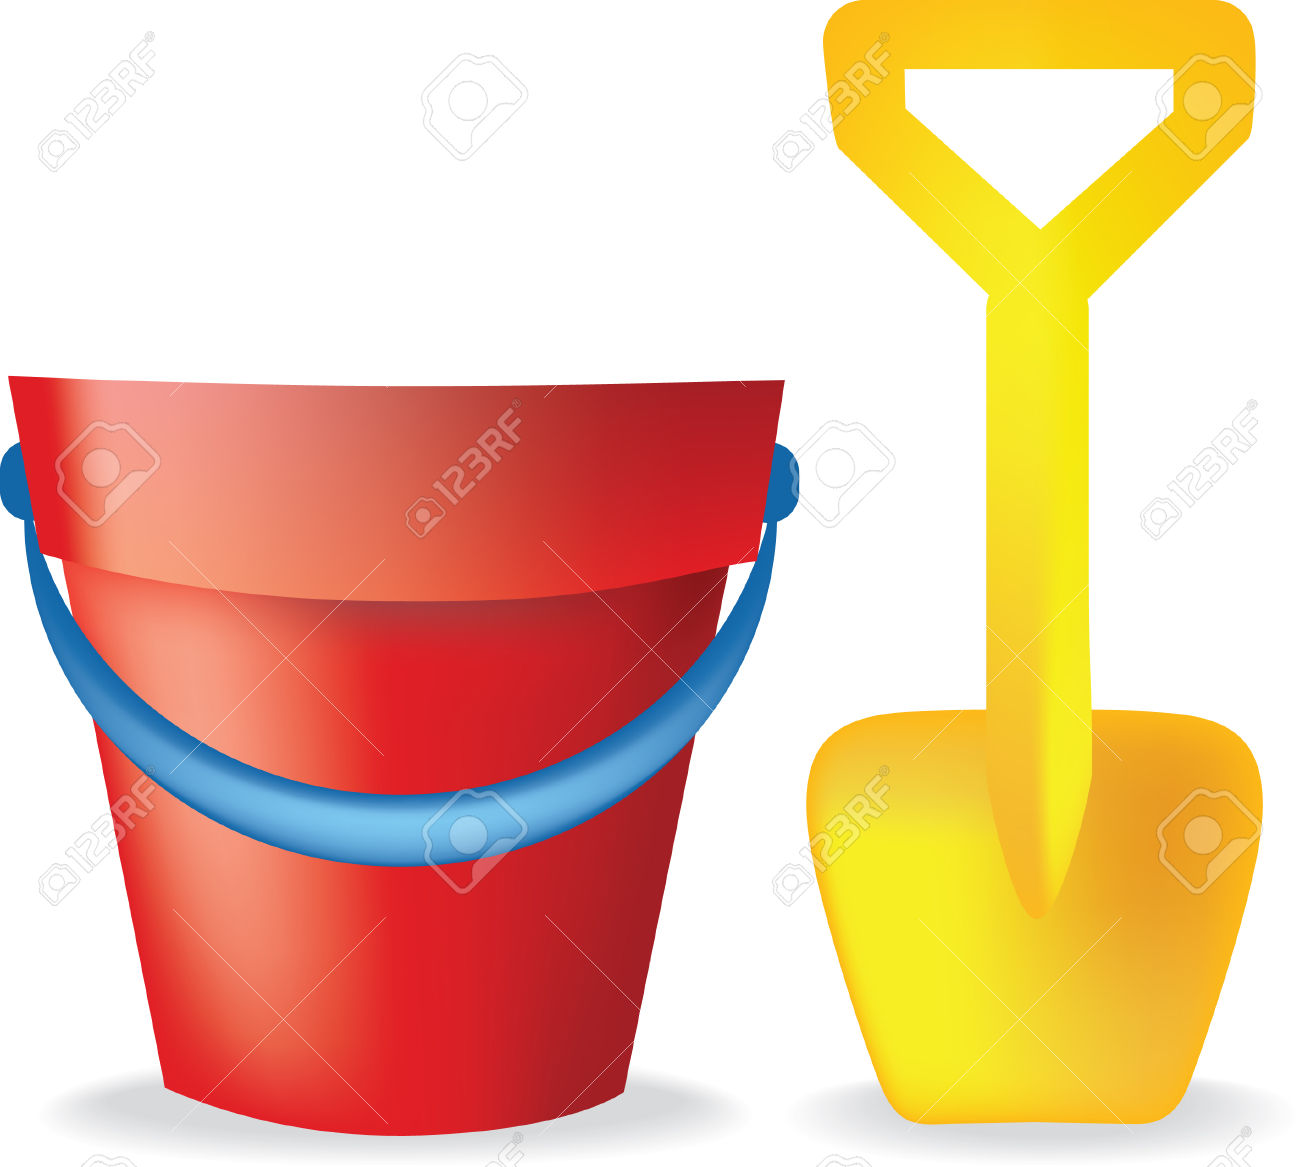 Bucket and spade clipart.